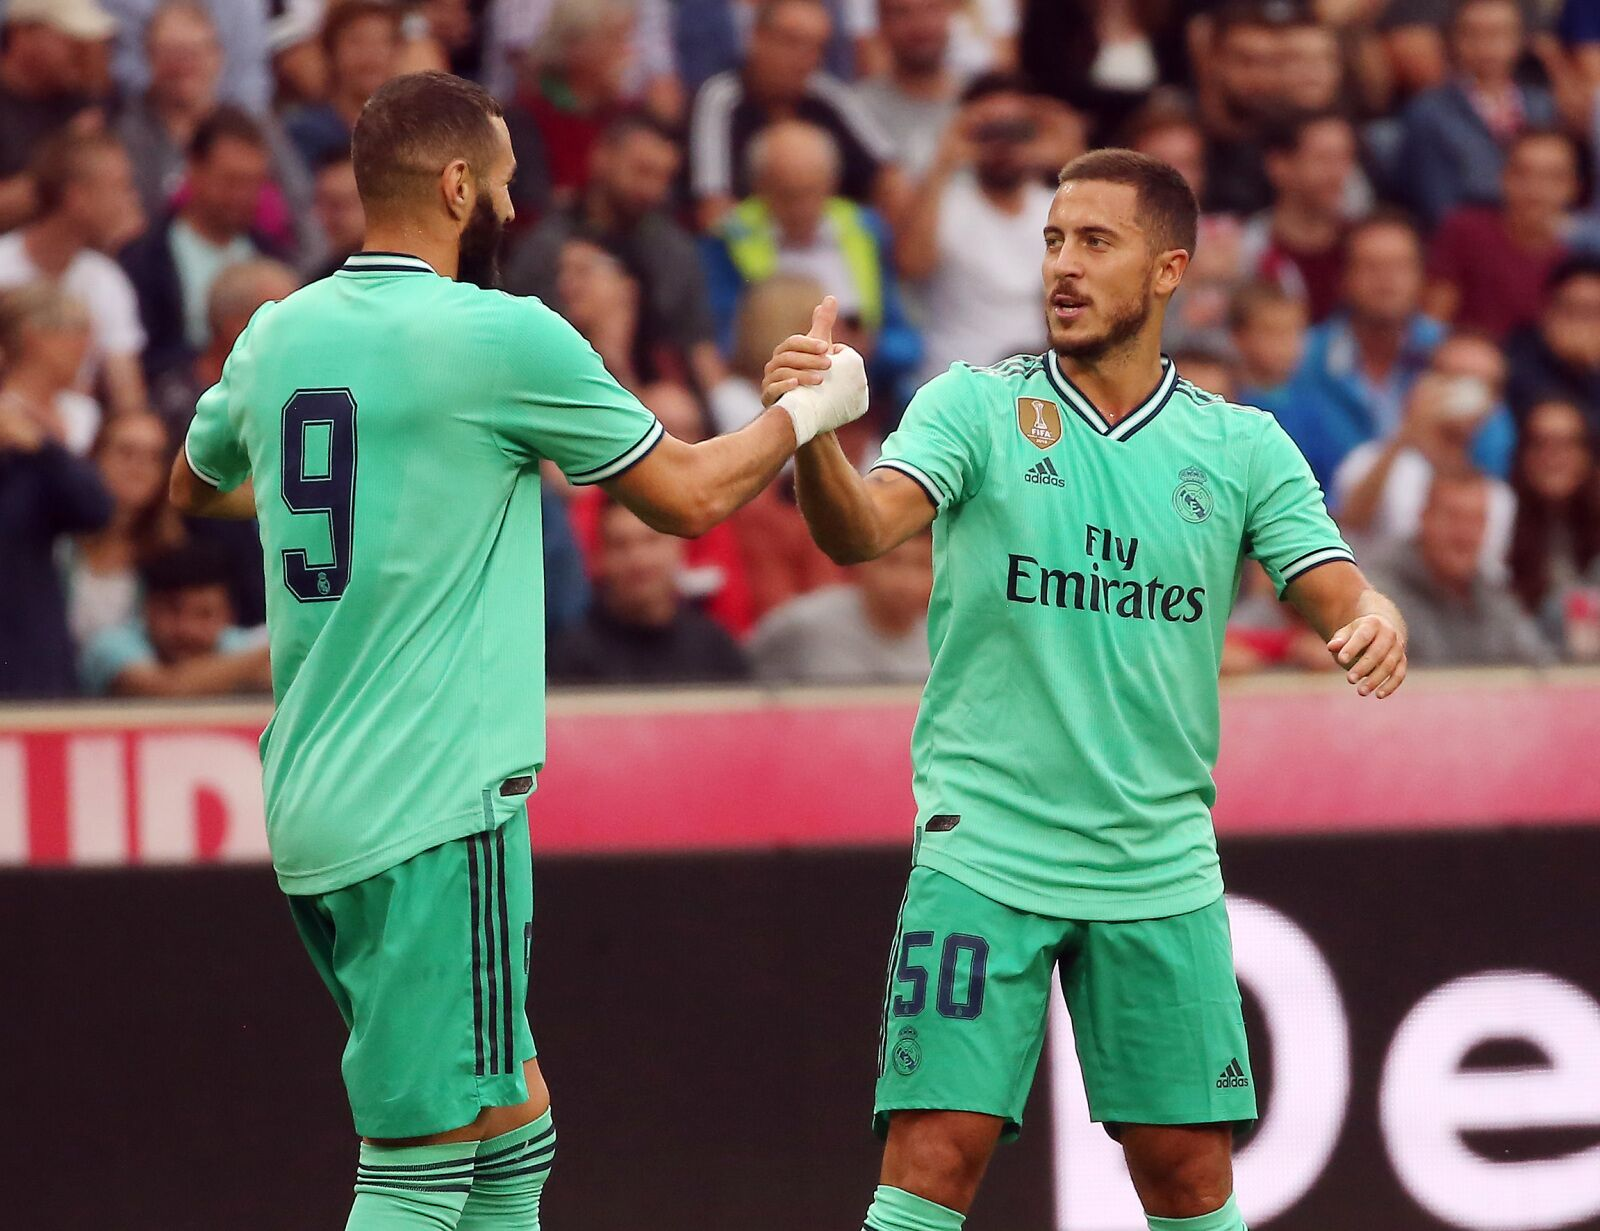 Real Madrid: 3 key matchups to watch against PSG